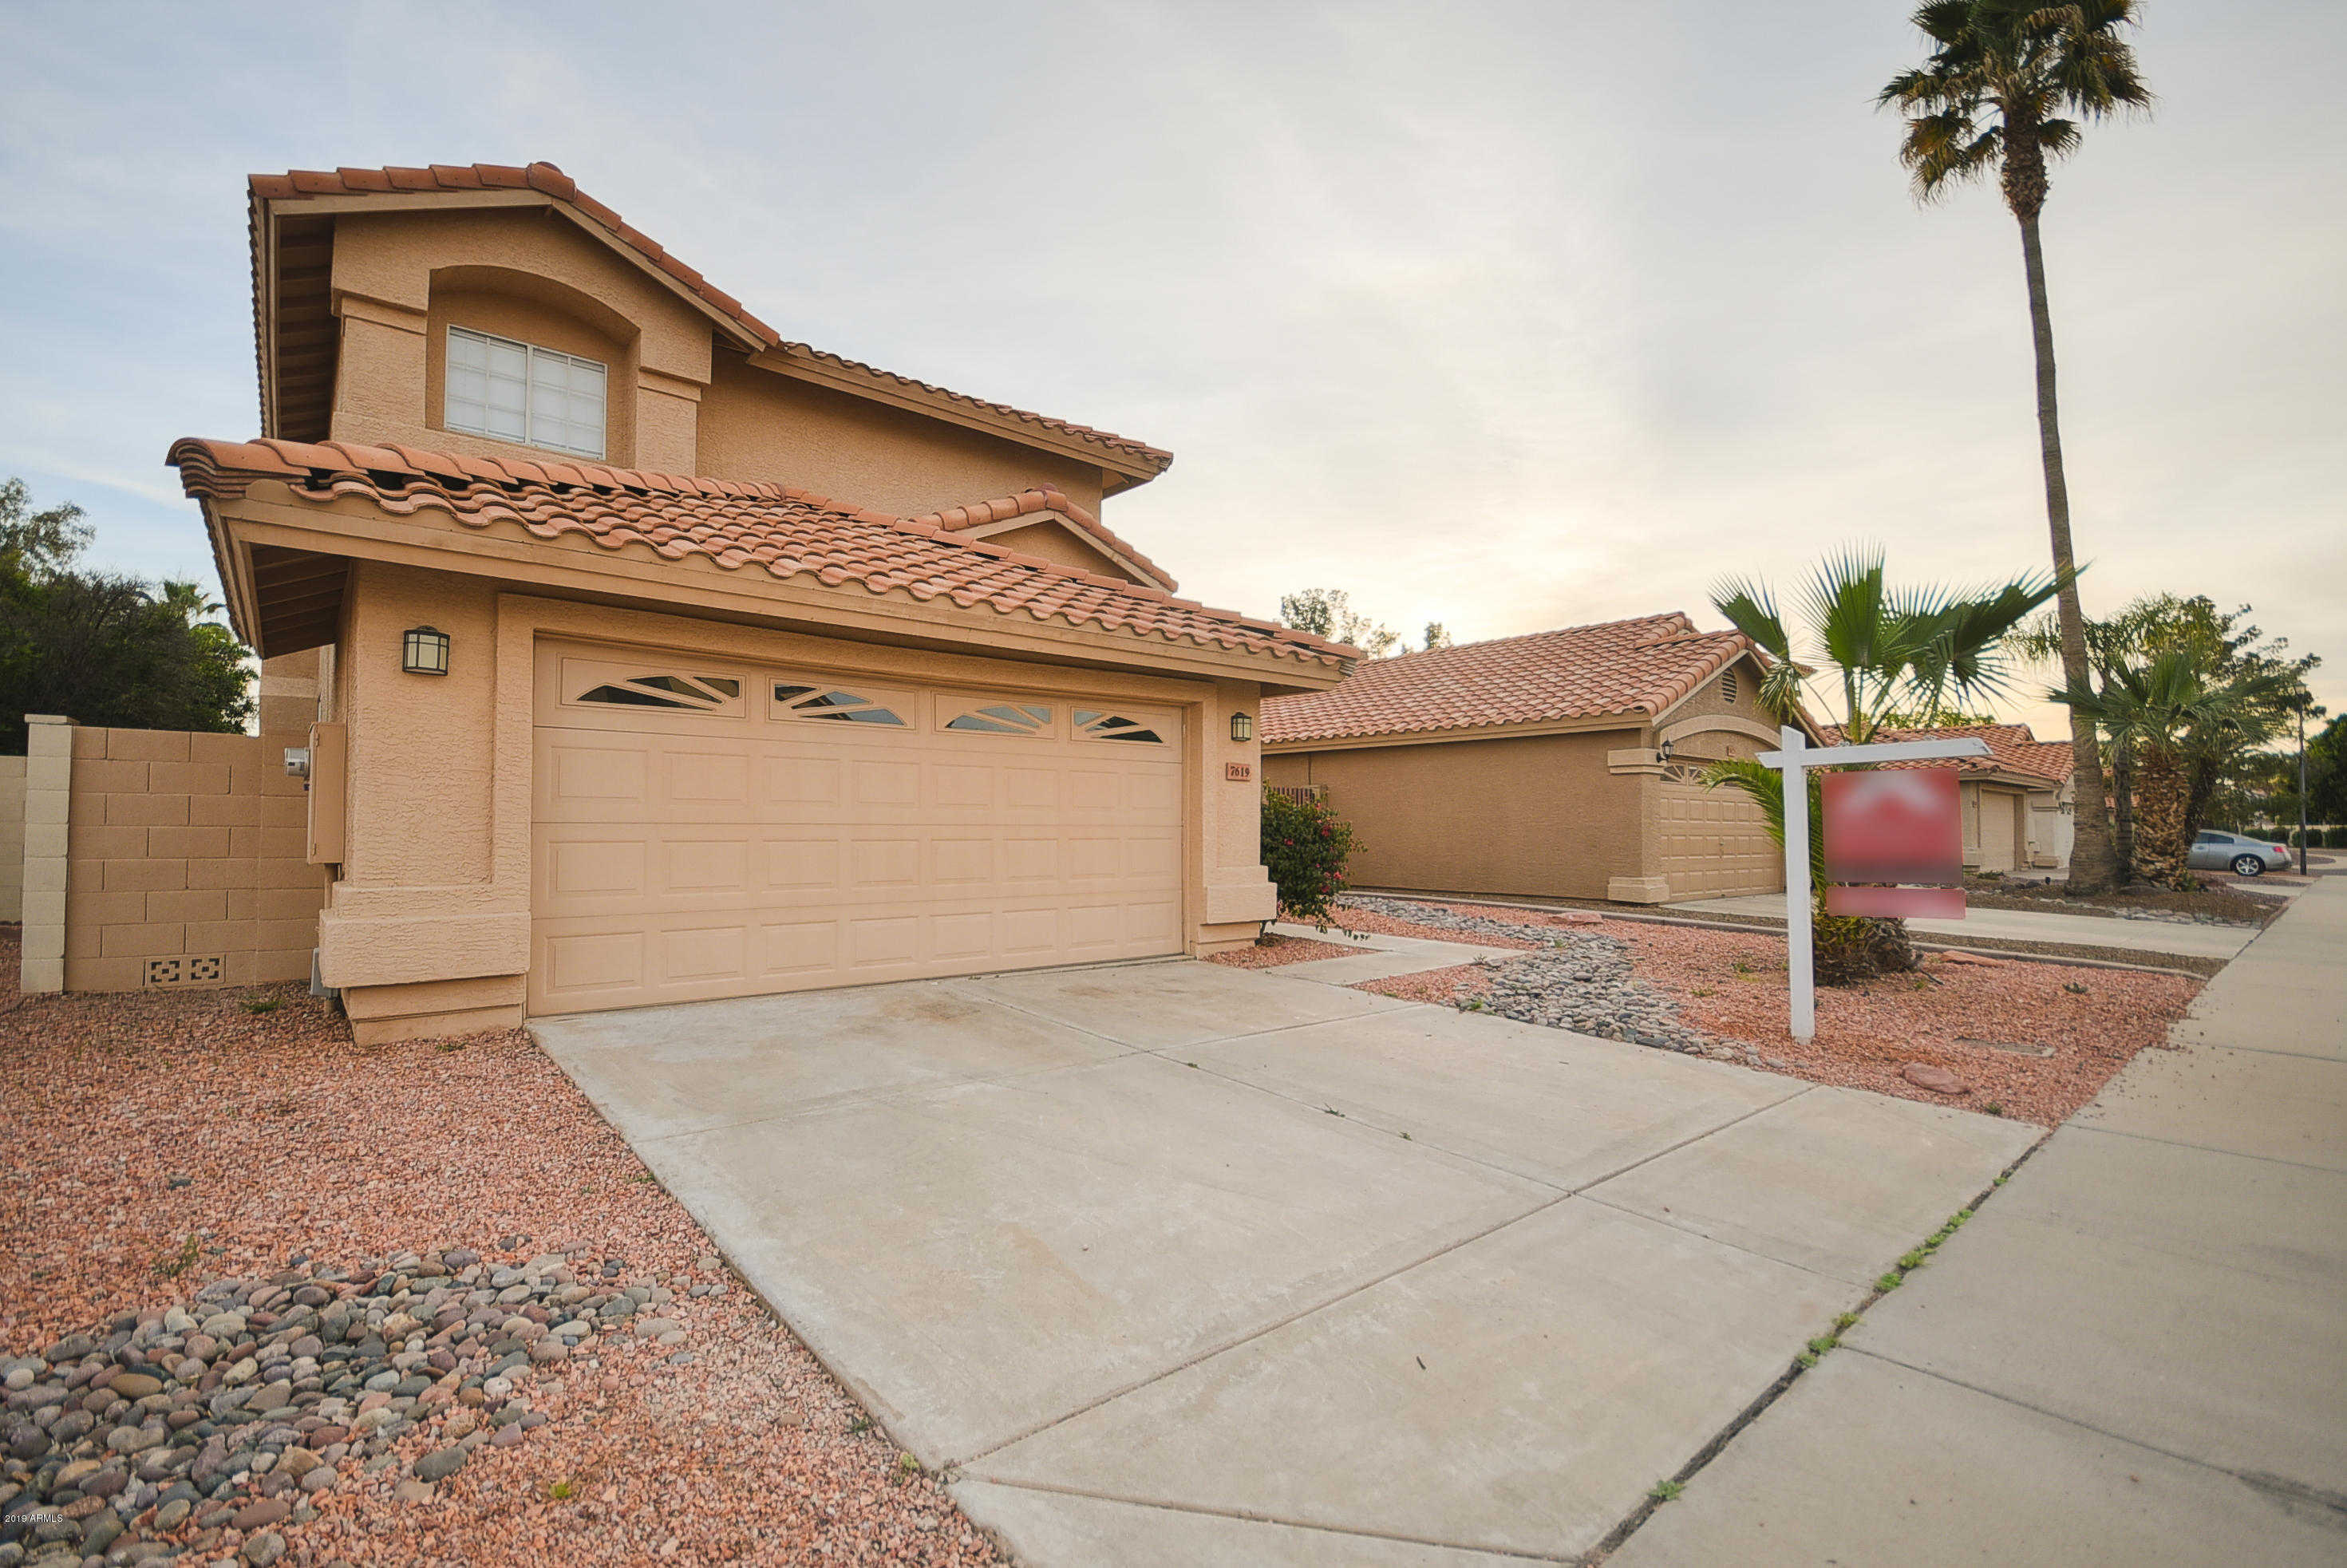 $310,000 - 4Br/3Ba - Home for Sale in Arrowhead On The Green Lot 1-325 Tr A-c, Glendale